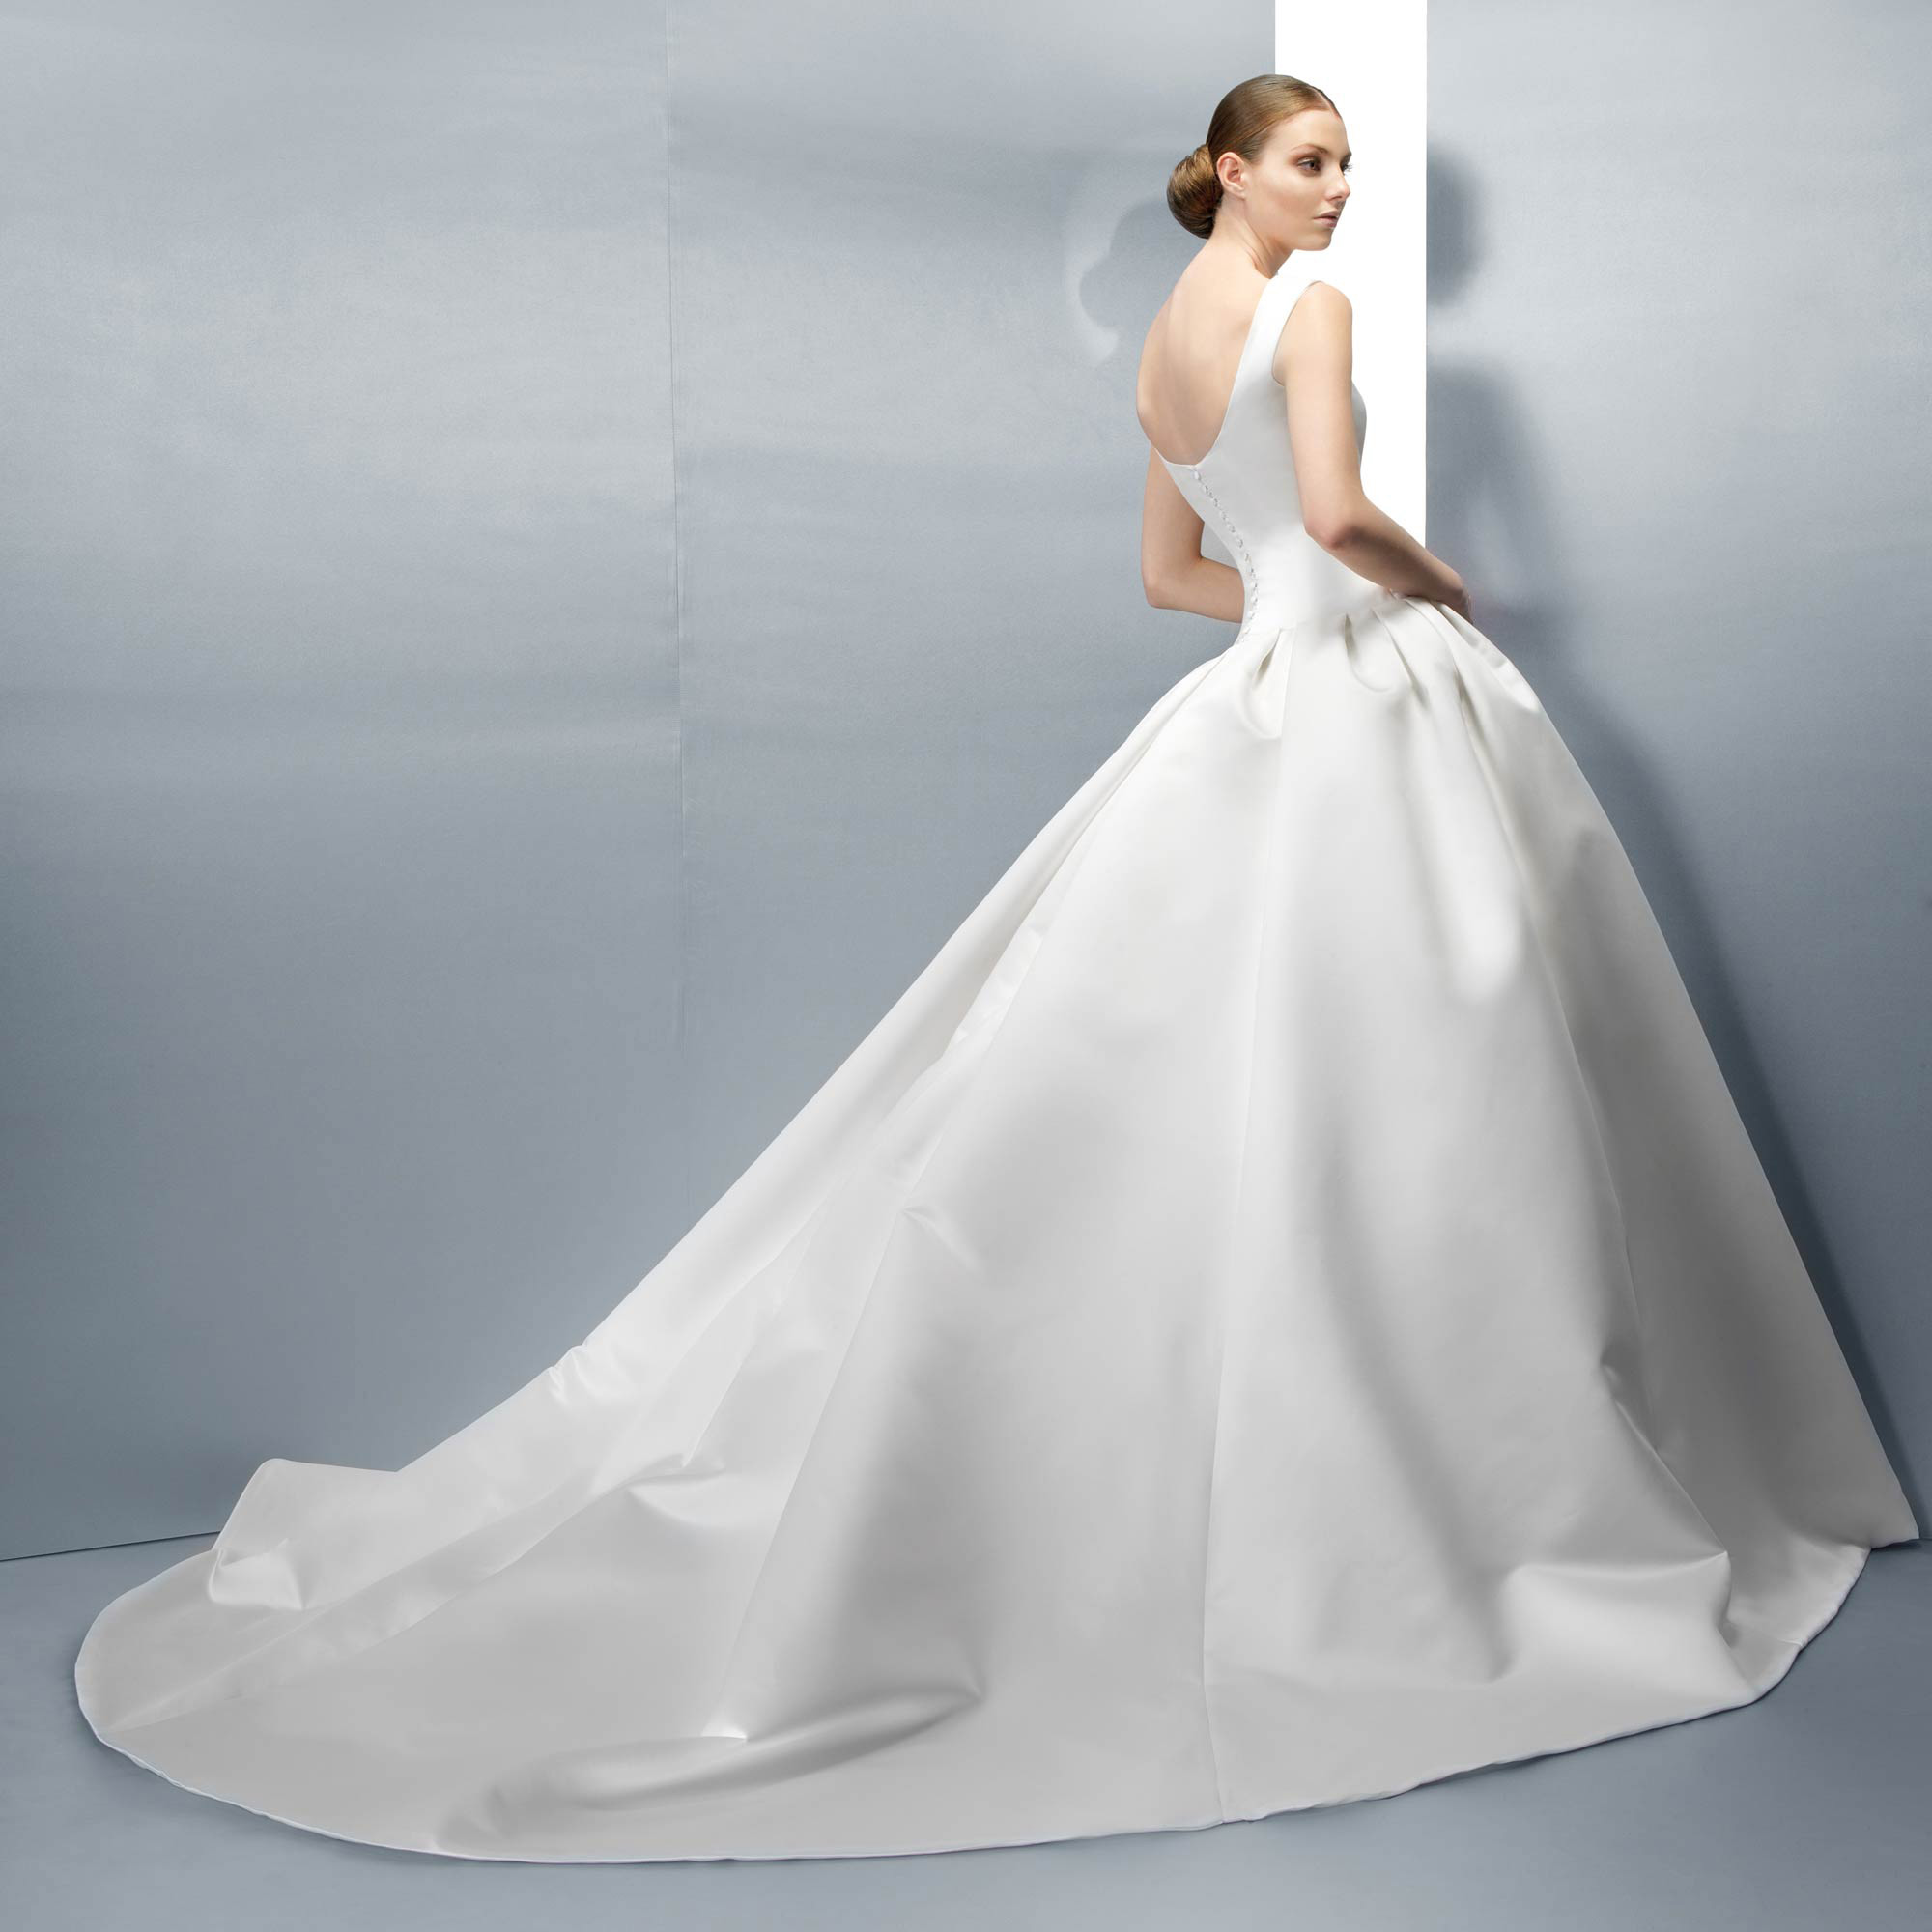 Famous Princess Diary 2 Wedding Dress Collection - Womens Dresses ...